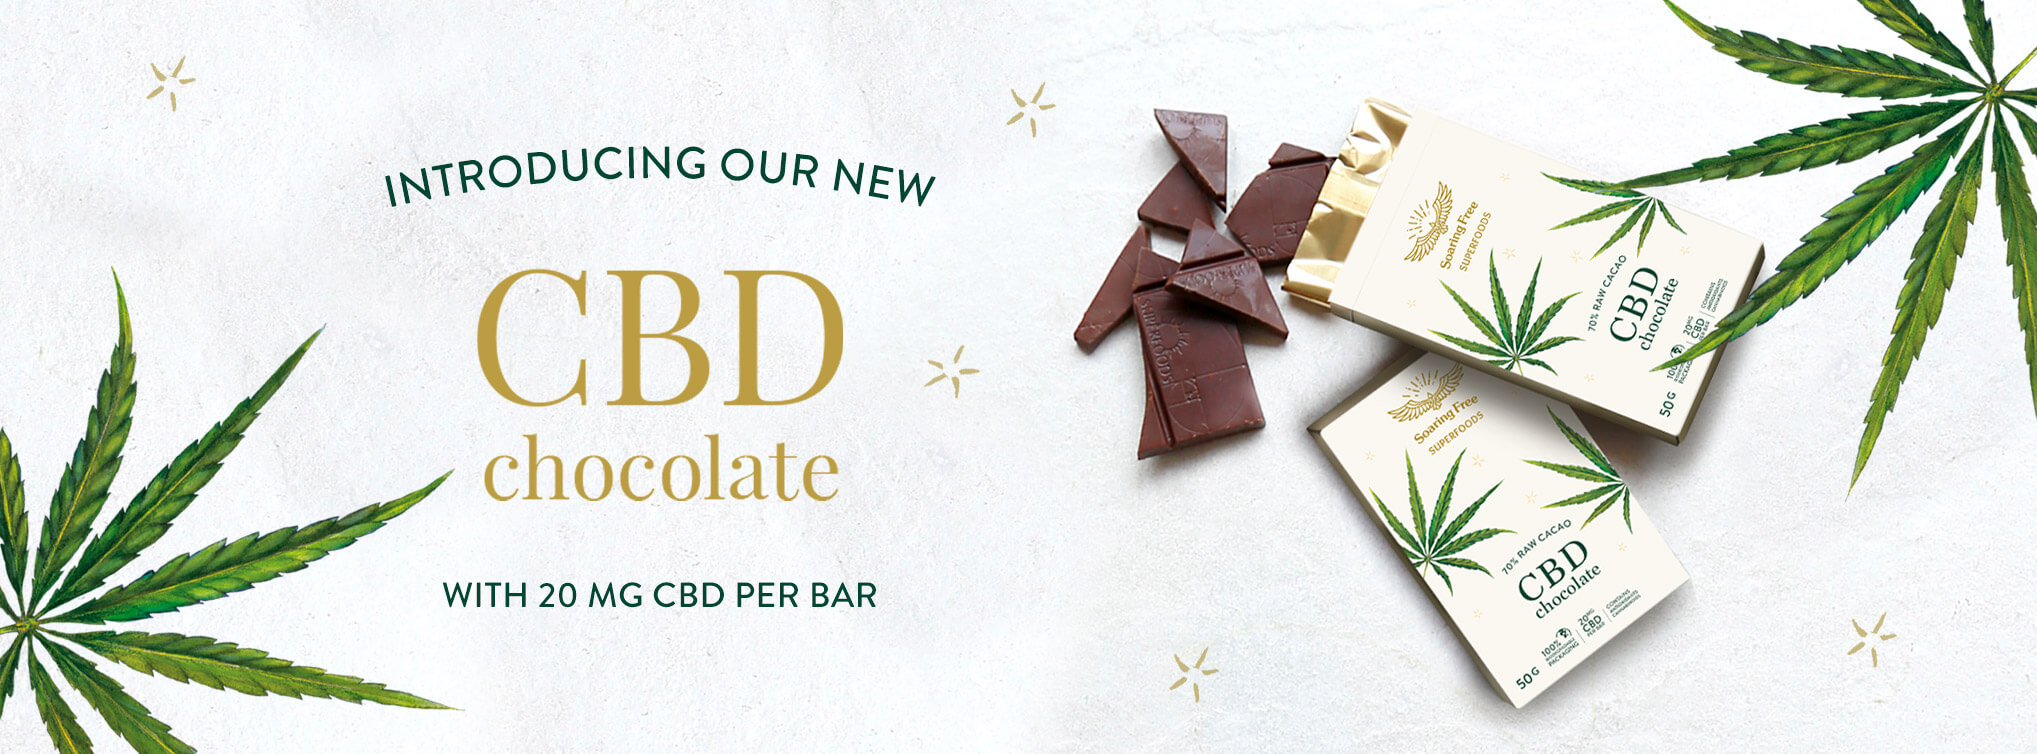 SoaringFree-CBD-Chocolate_1